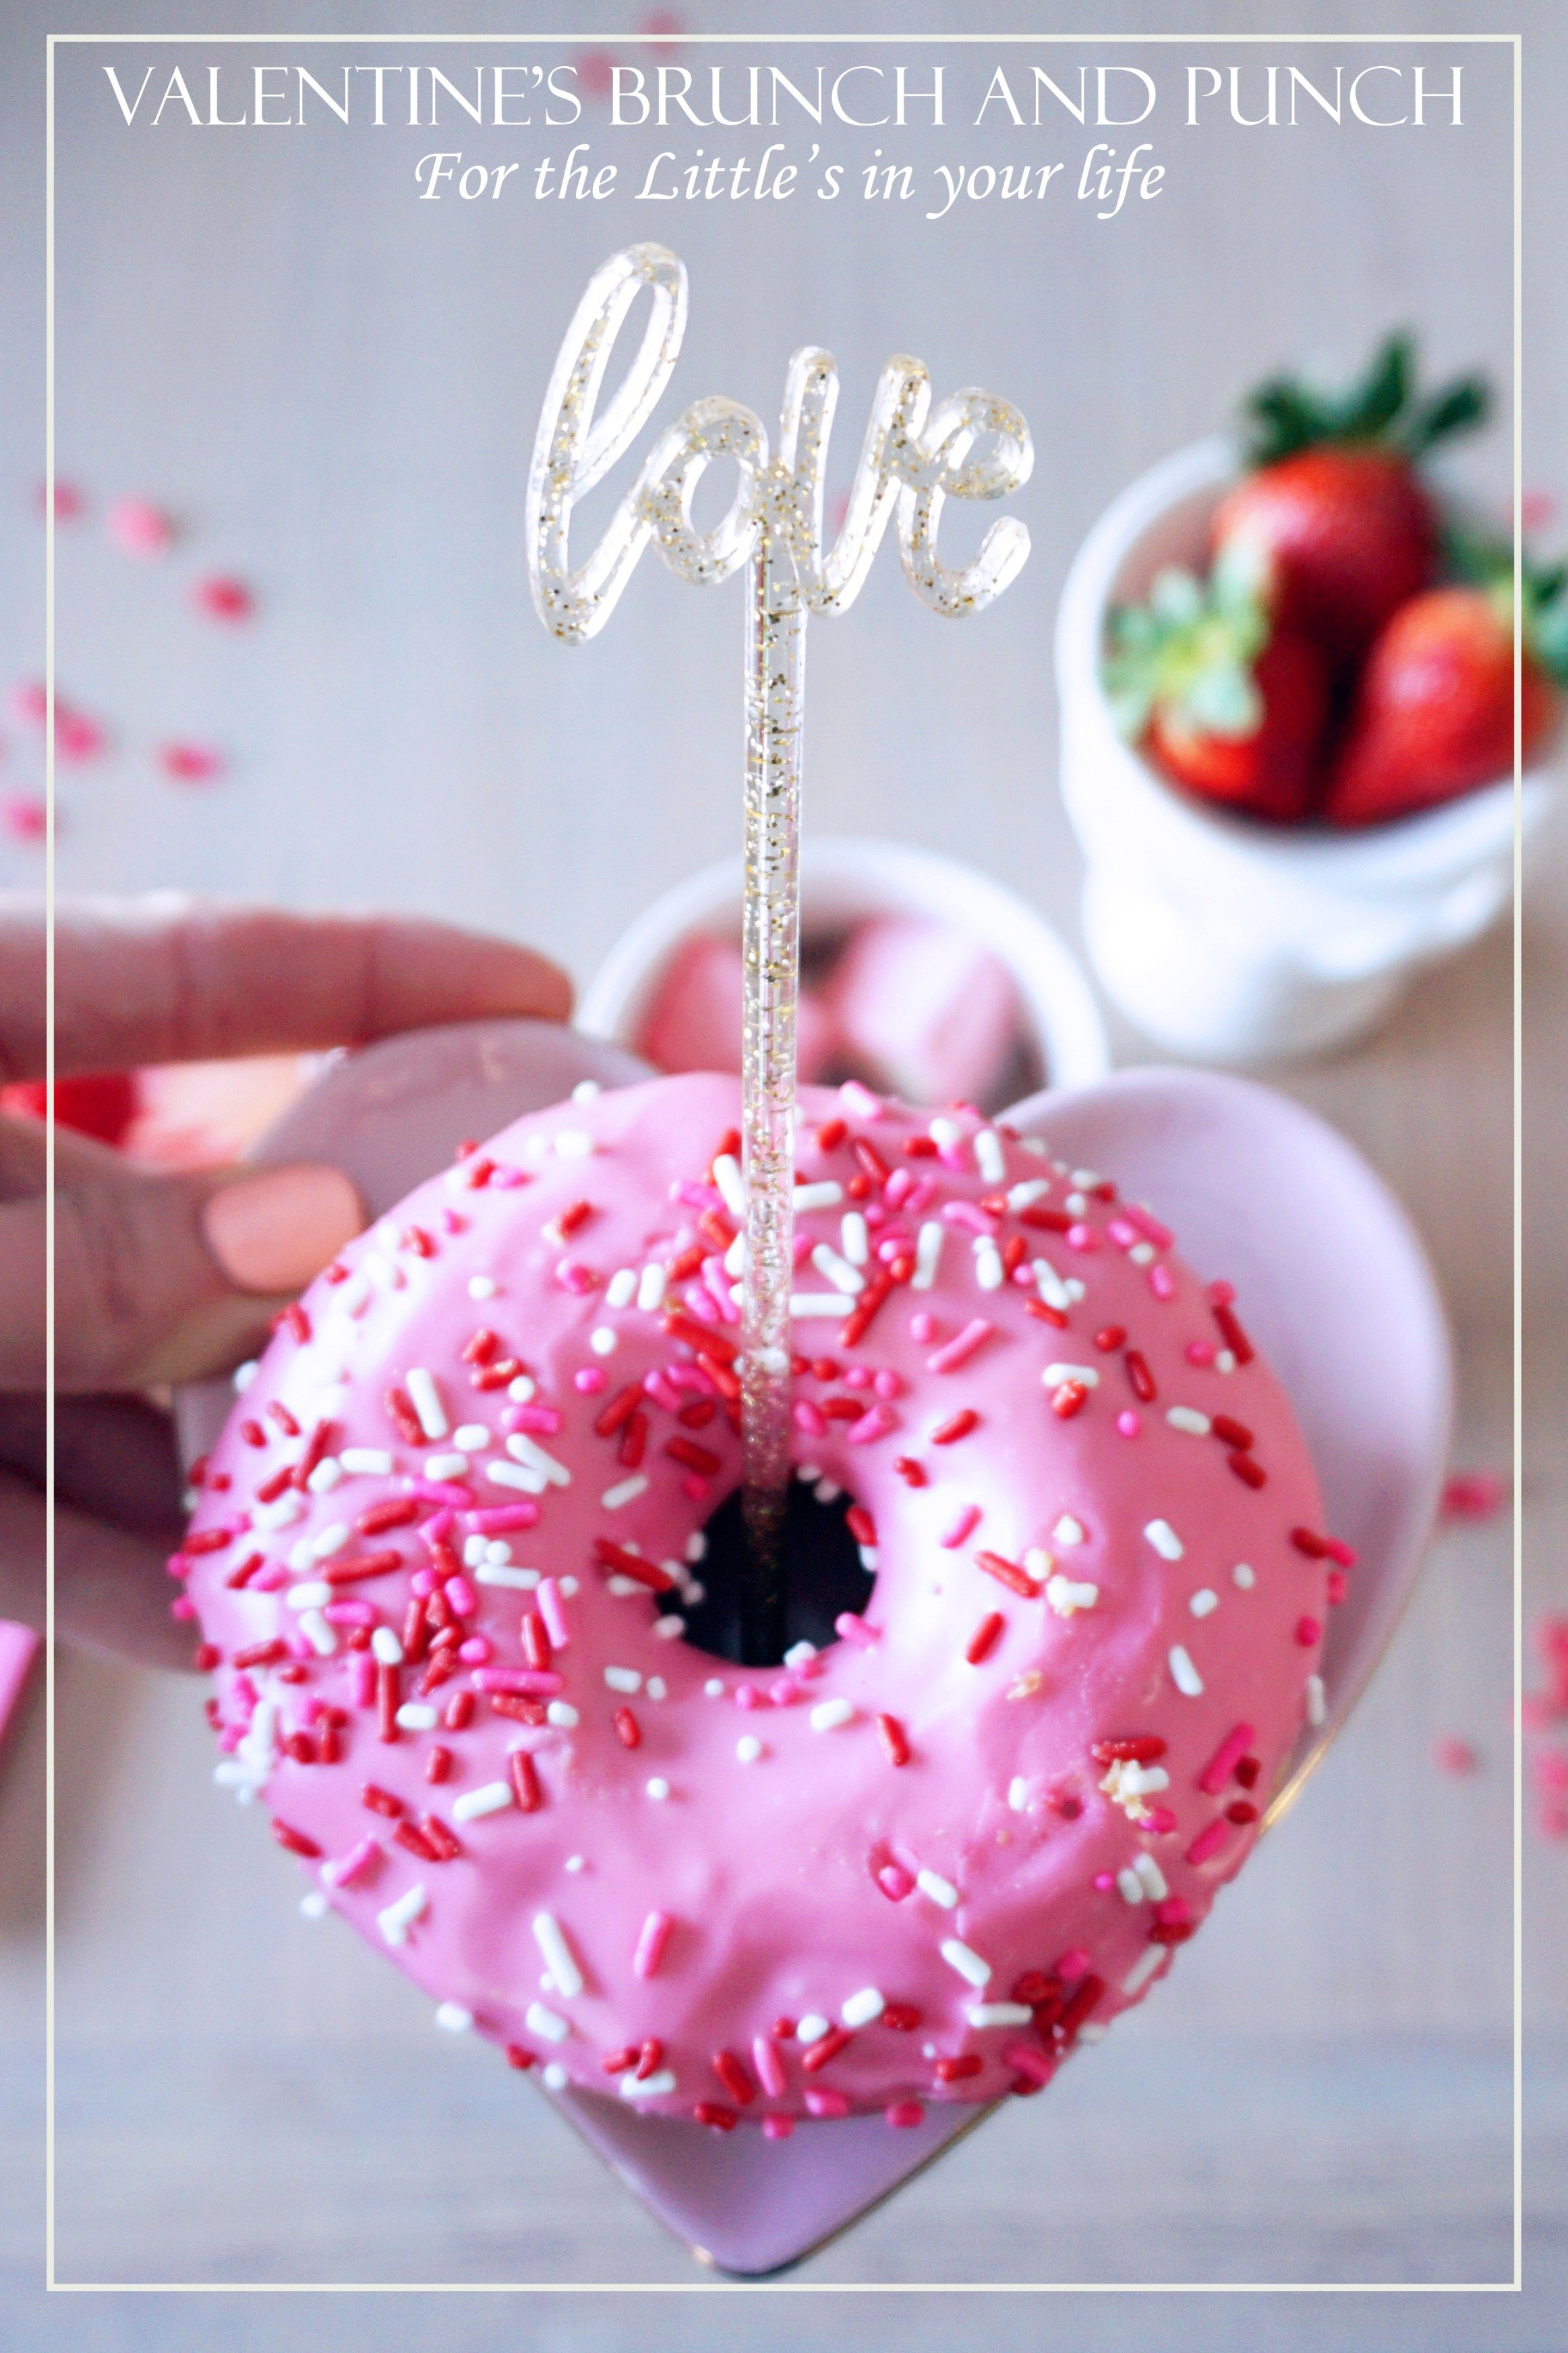 Valentine's Day Brunch and Punch for the Little's in your Life | EH Design Blog | Valentine's Celebration for the Kids